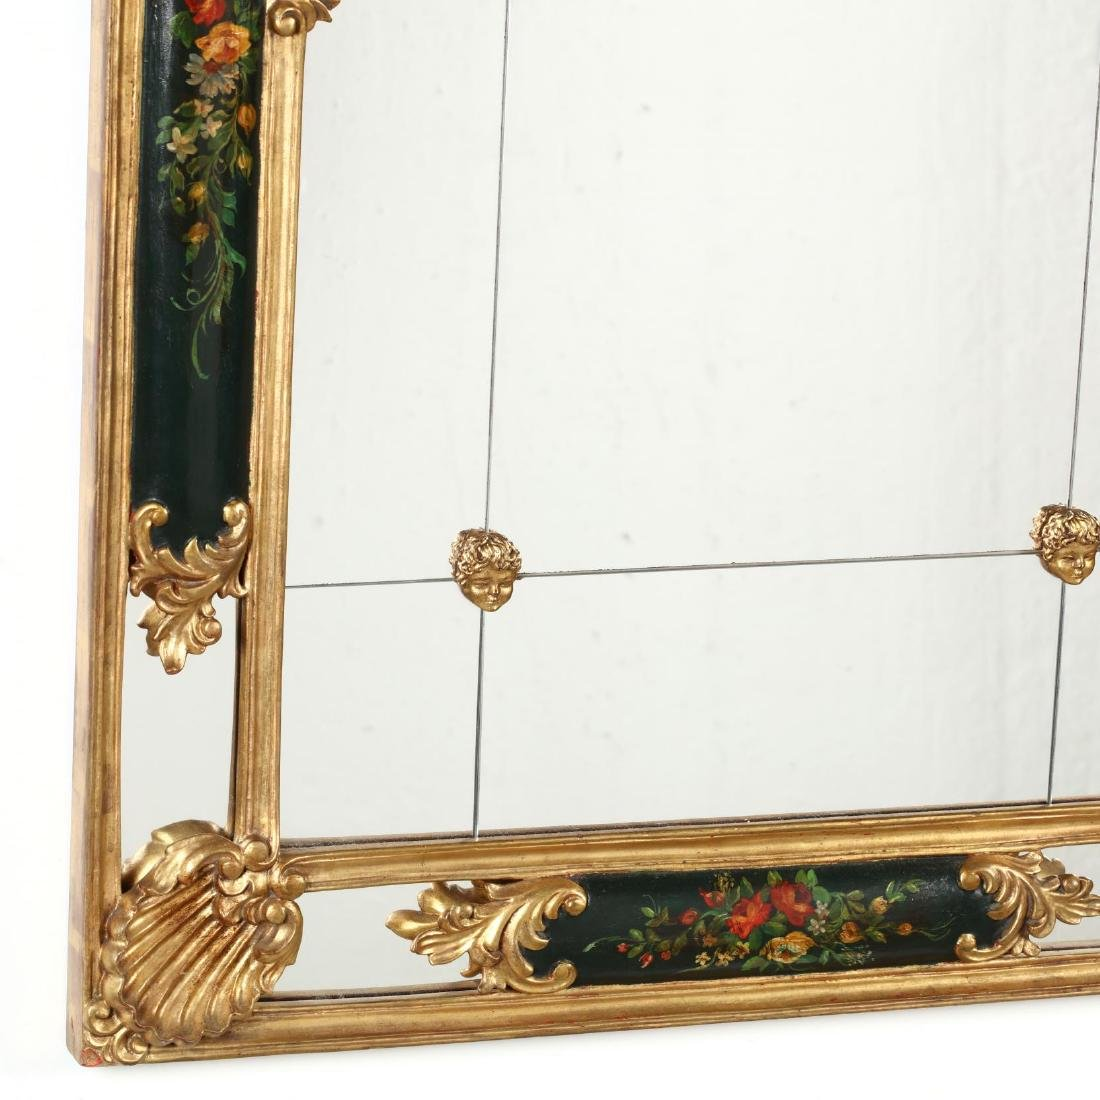 A Designer Baroque Style Scenic Painted Mirror - 3